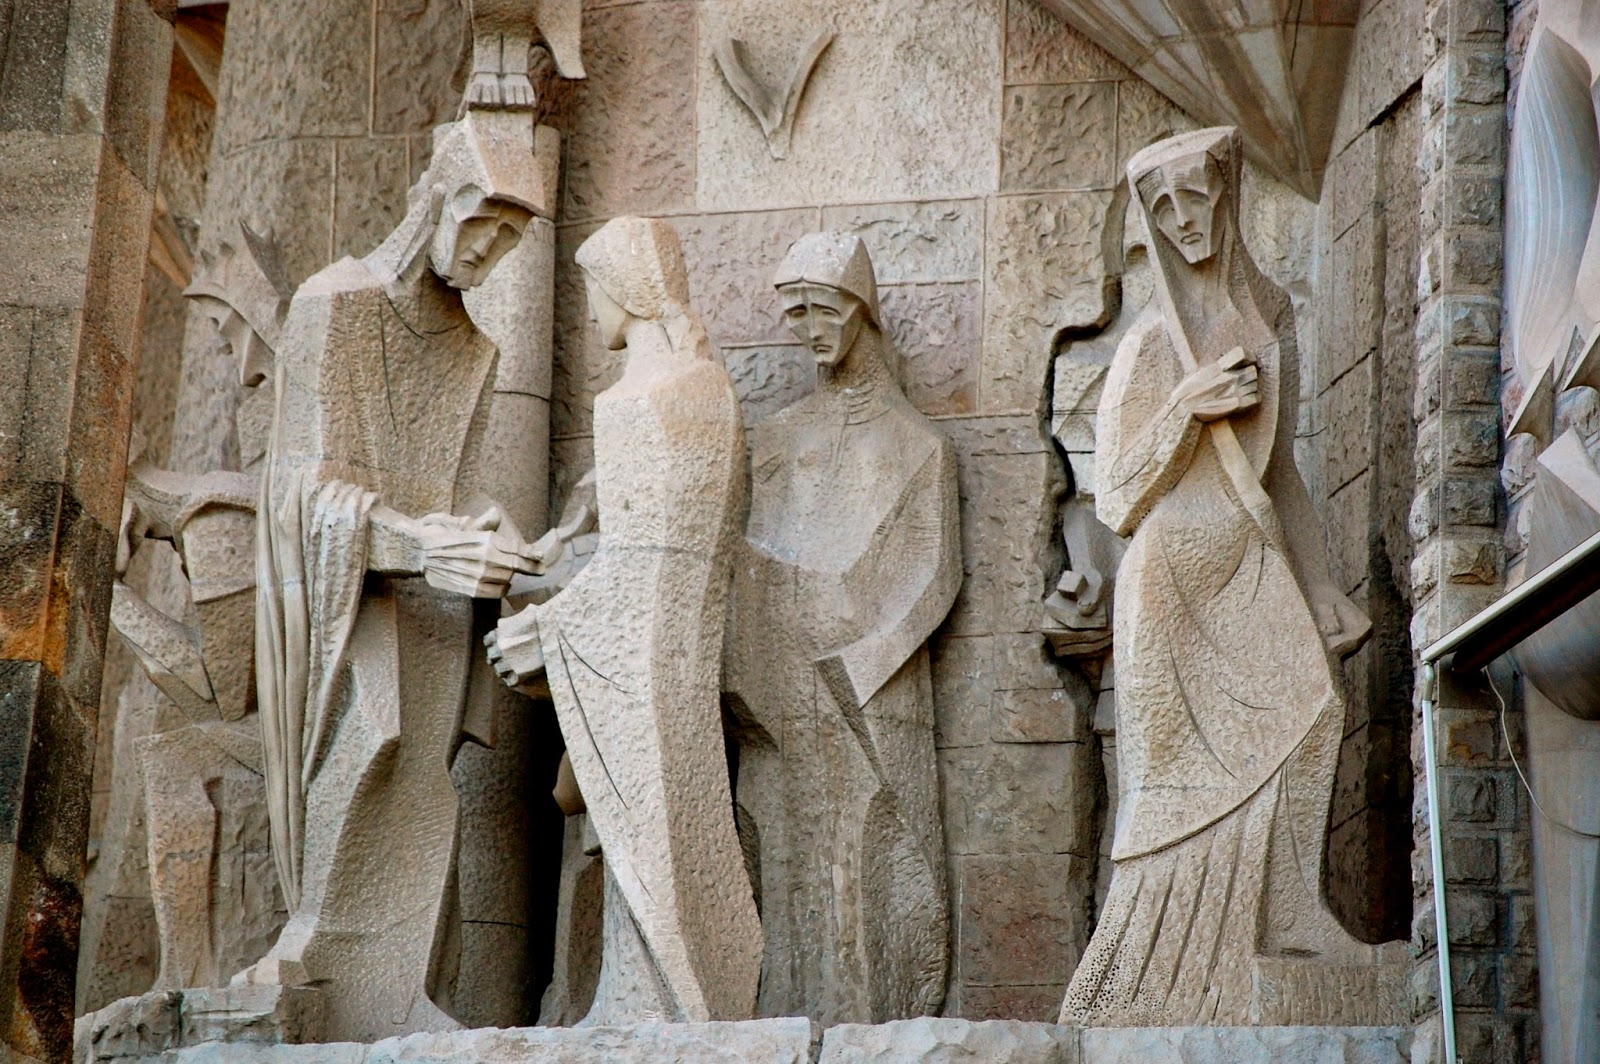 Carving of Pontius Pilate washing his hands